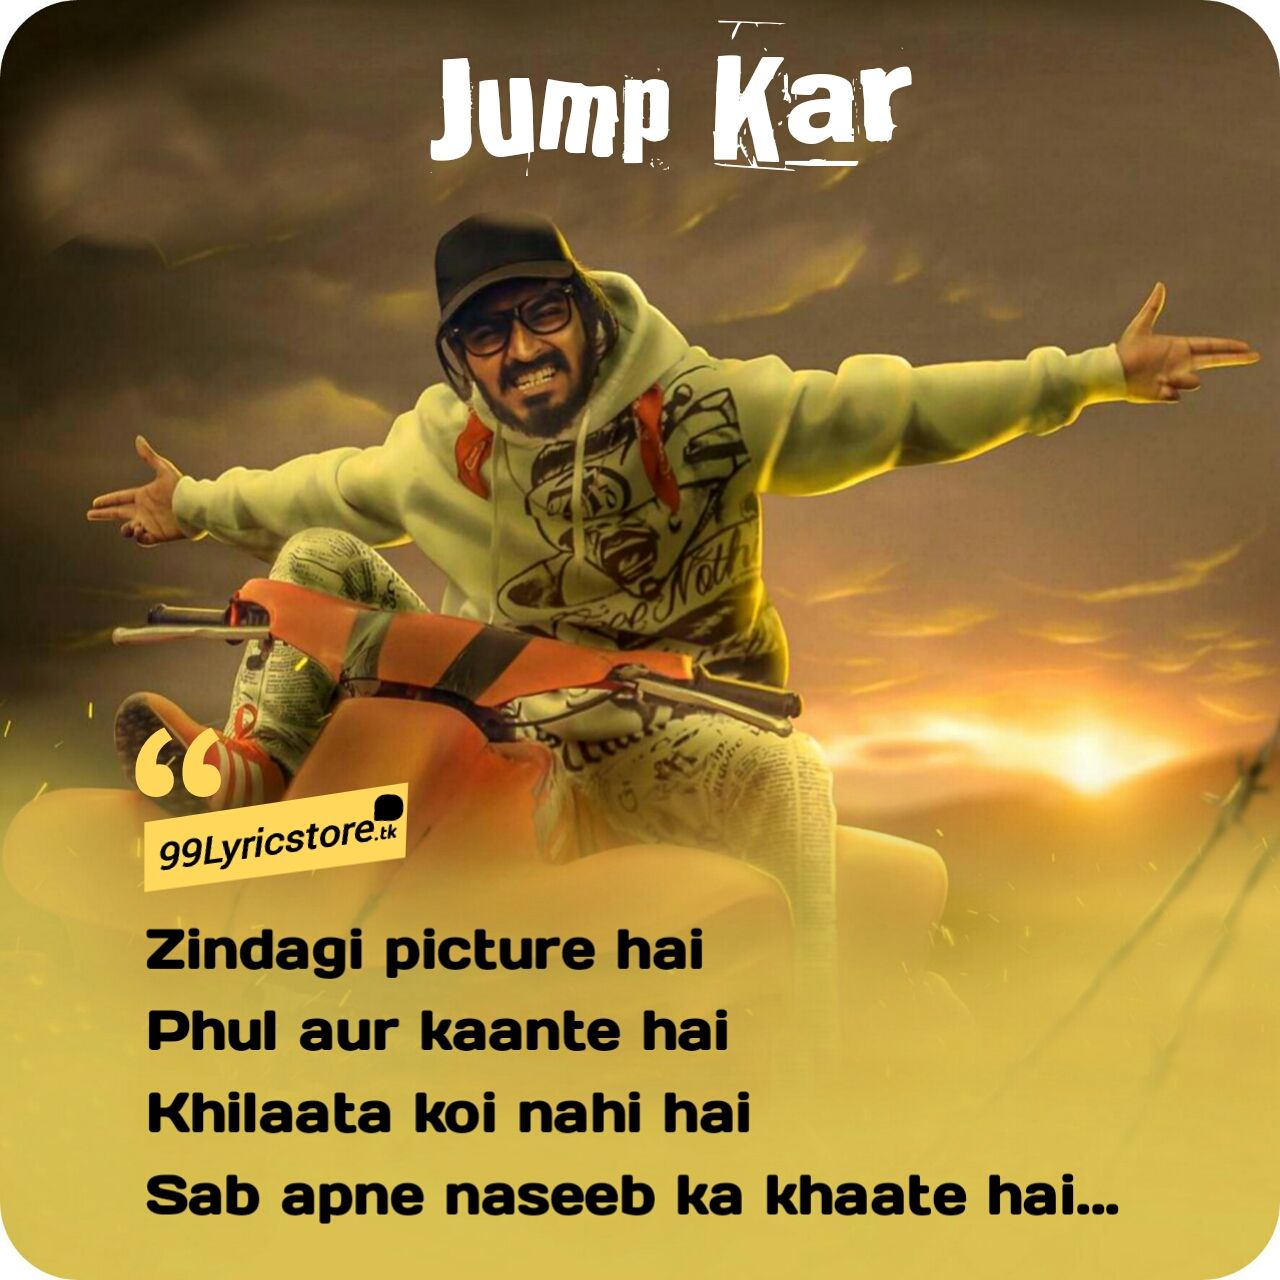 Emiway Bantai – Jump Kar Lyrics | Flamboy, Happy, Emiway Bantai Latest Song Lyrics, Emiway Bantai Rap Lyrics, jump Kar Emiway Bantai Rap Lyrics, Emiway Bantai Jump Kar Song Lyrics, Emiway Bantai Jump Kar Rap Lyrics In Hindi ,Latest Attitude Rap in Hindi, Beat Attitude Status In Hindi